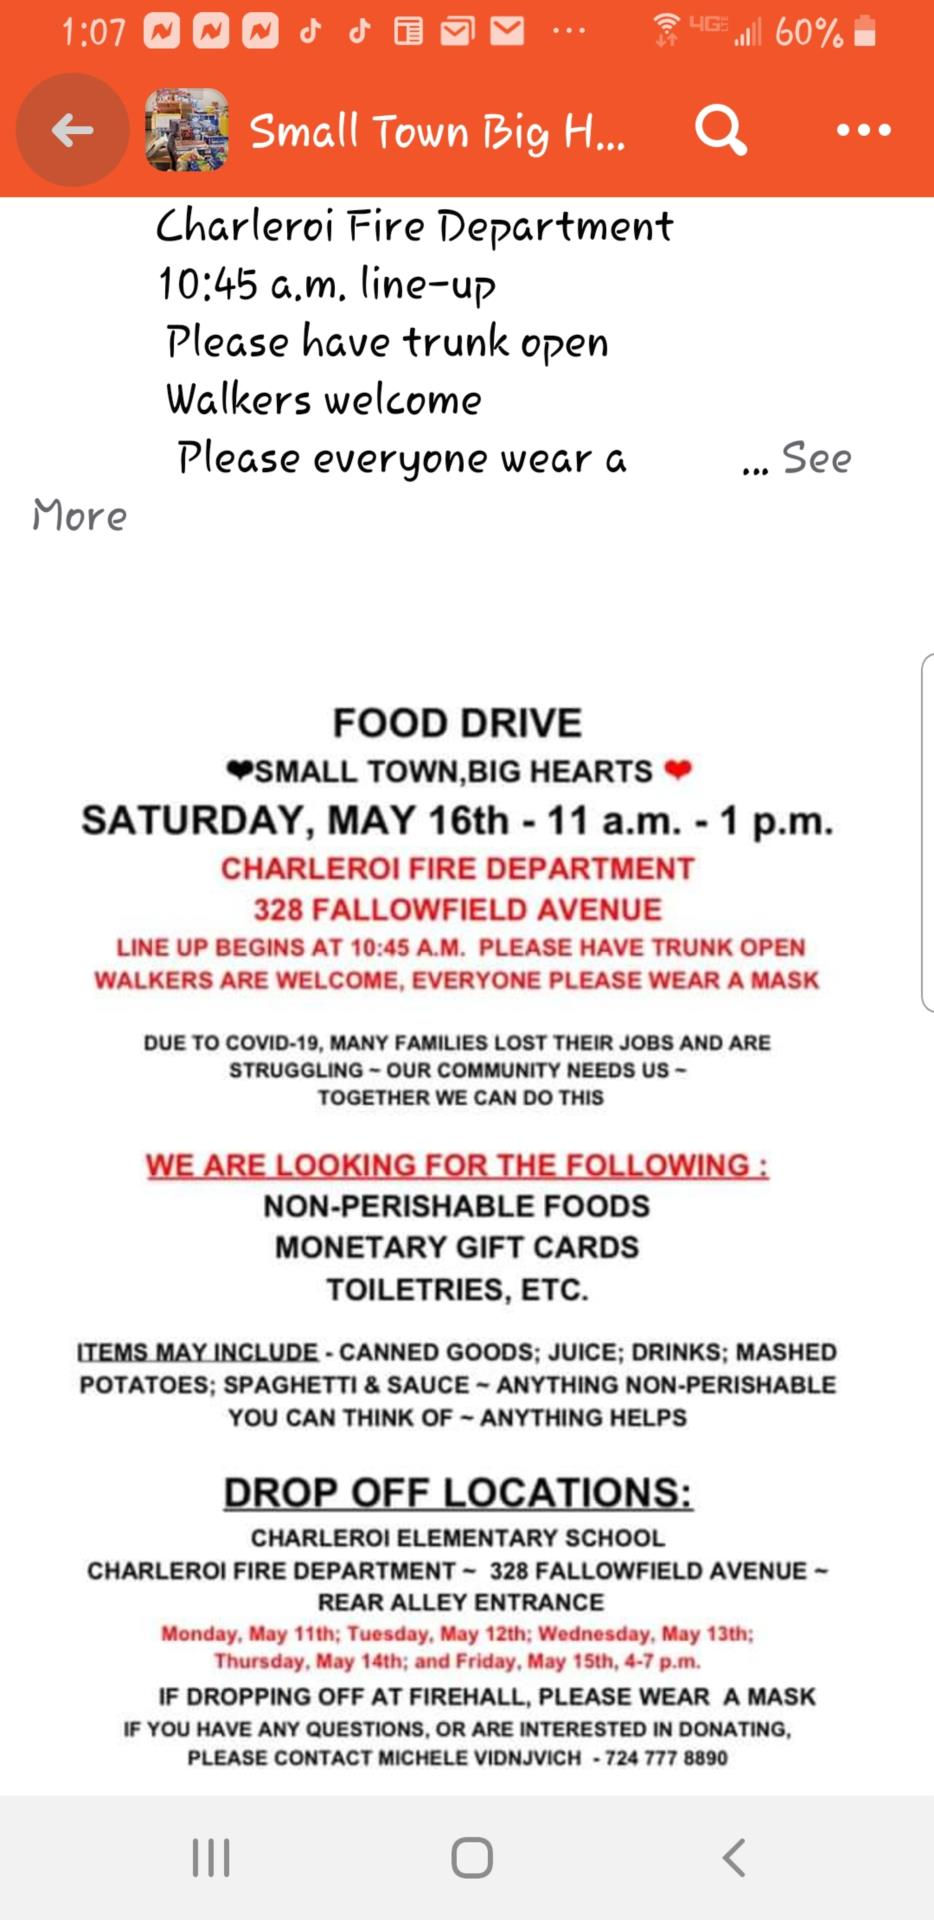 Food Drive at the Charleroi Fire Dept at the rear alley entrance on Saturday,  May 16th, 11am-1pm